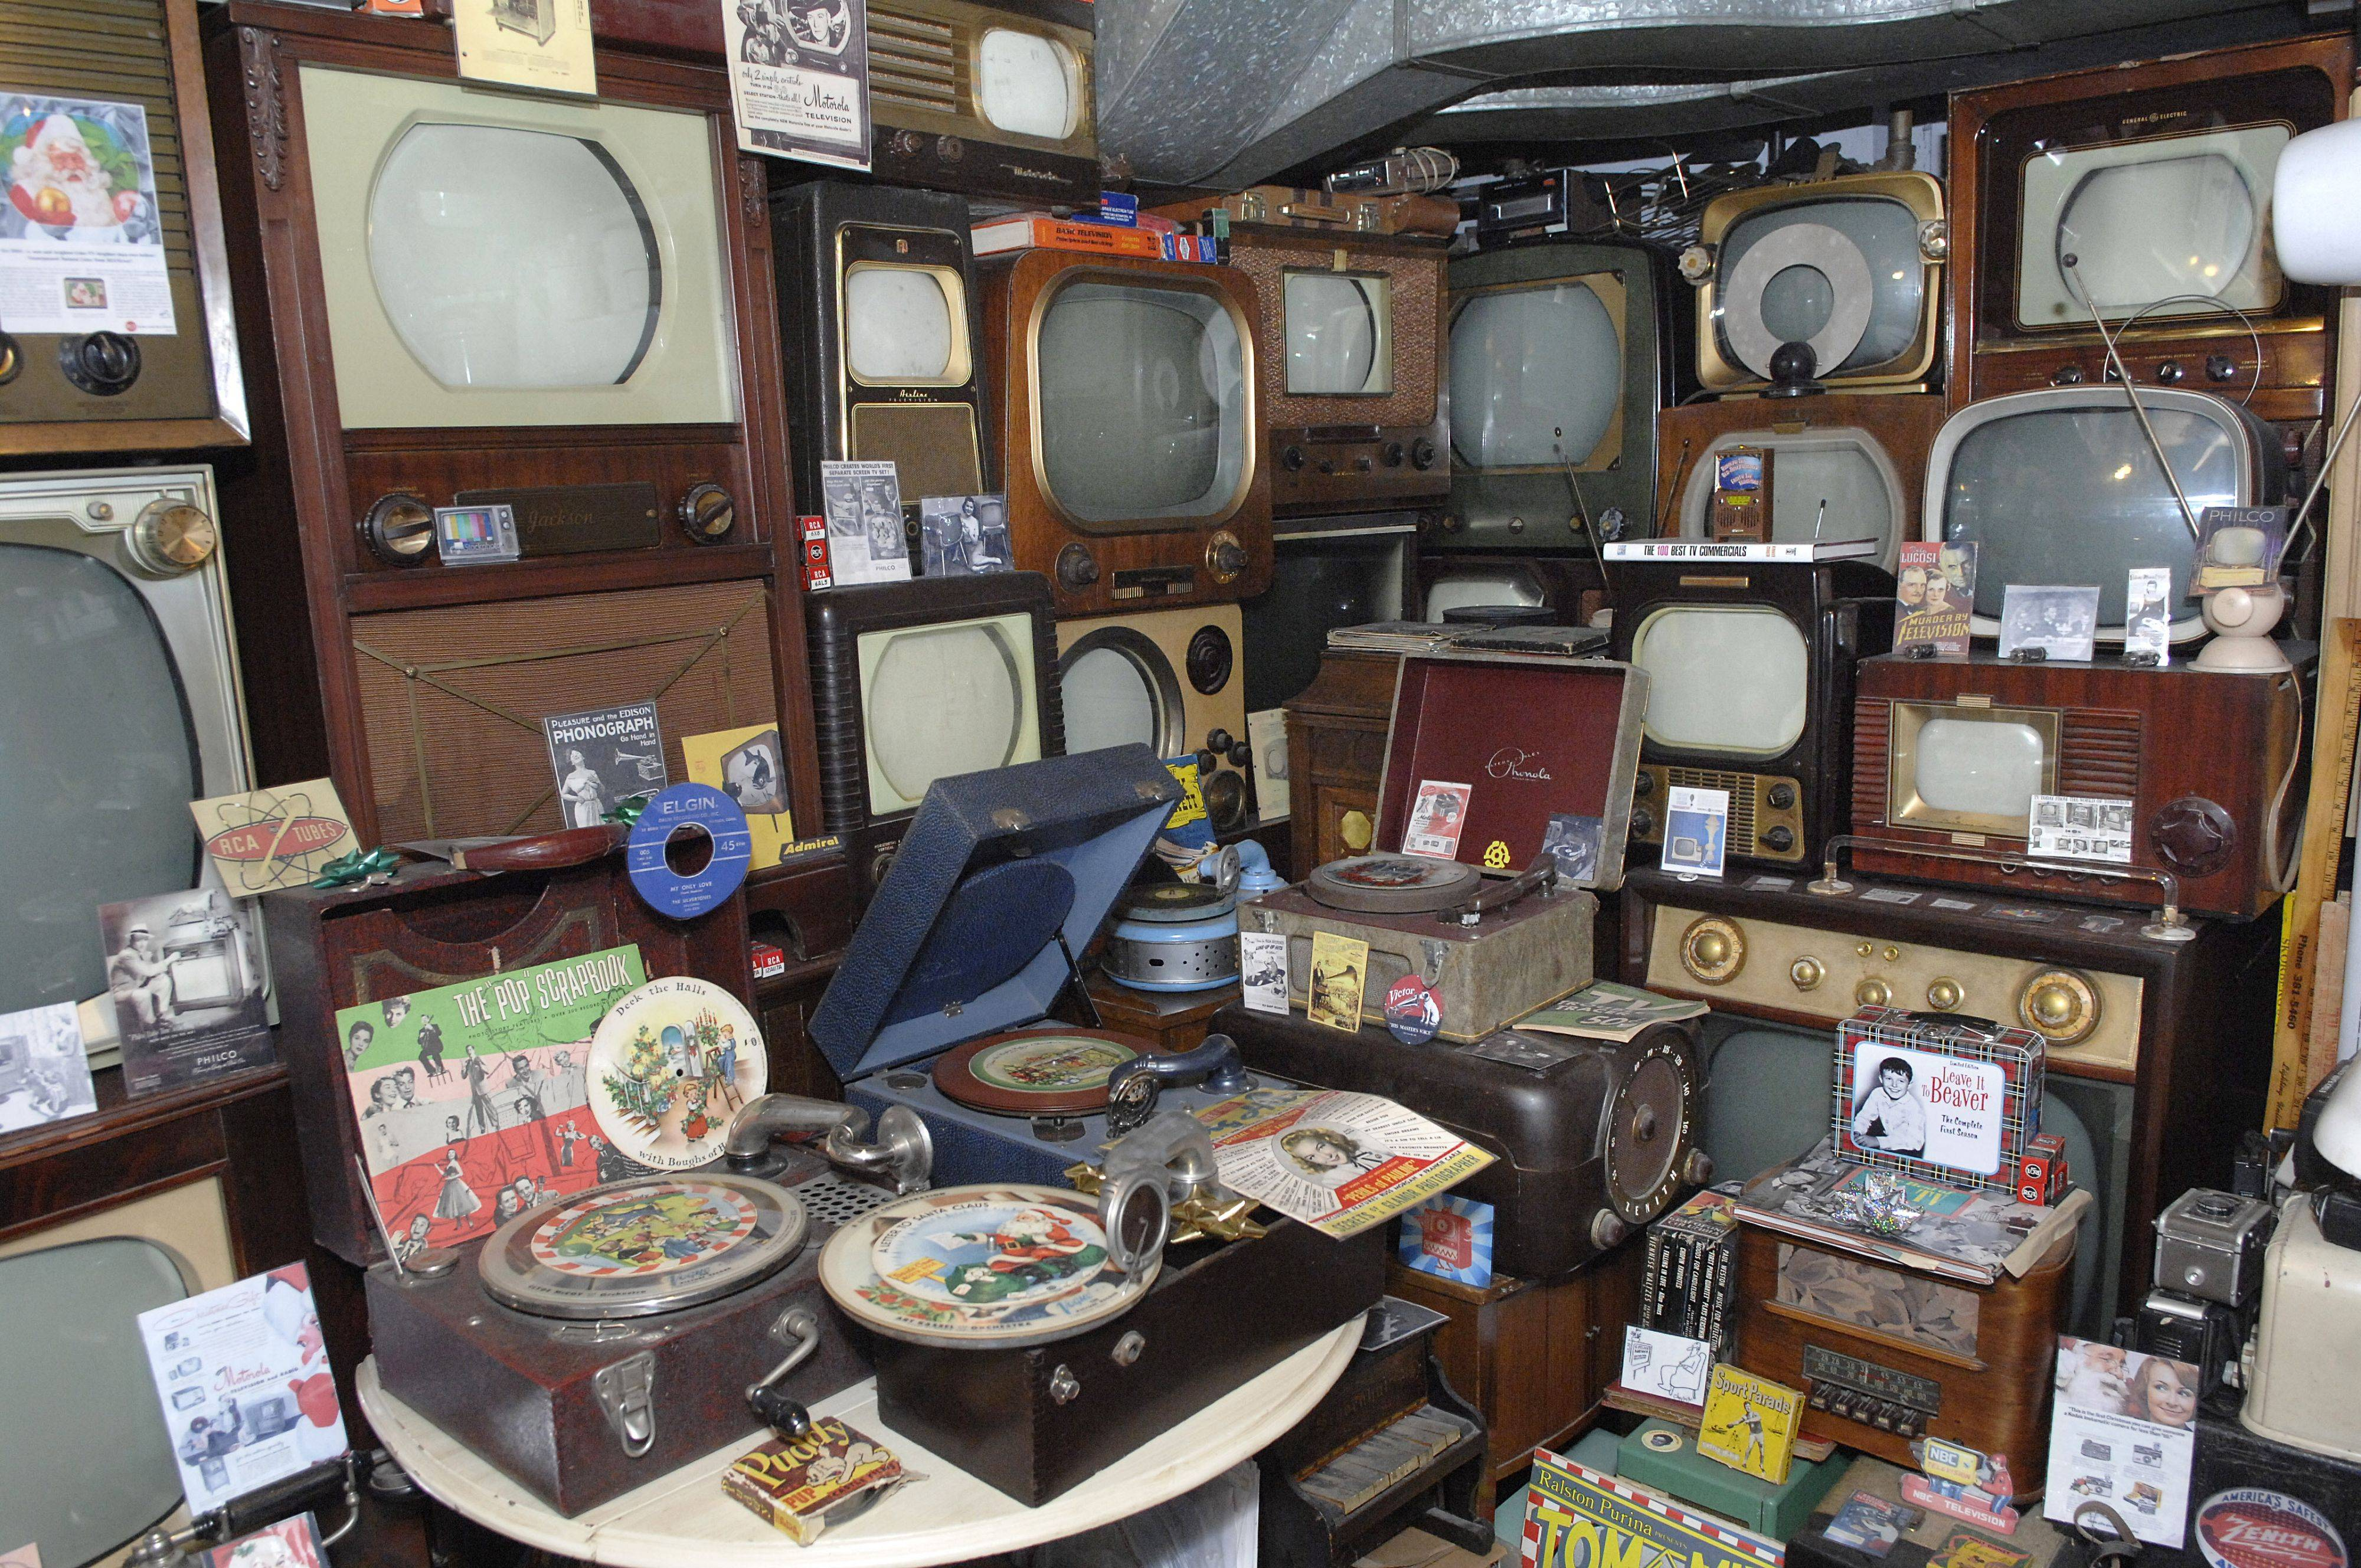 Some of Thoren's TVs, record players and turntables.